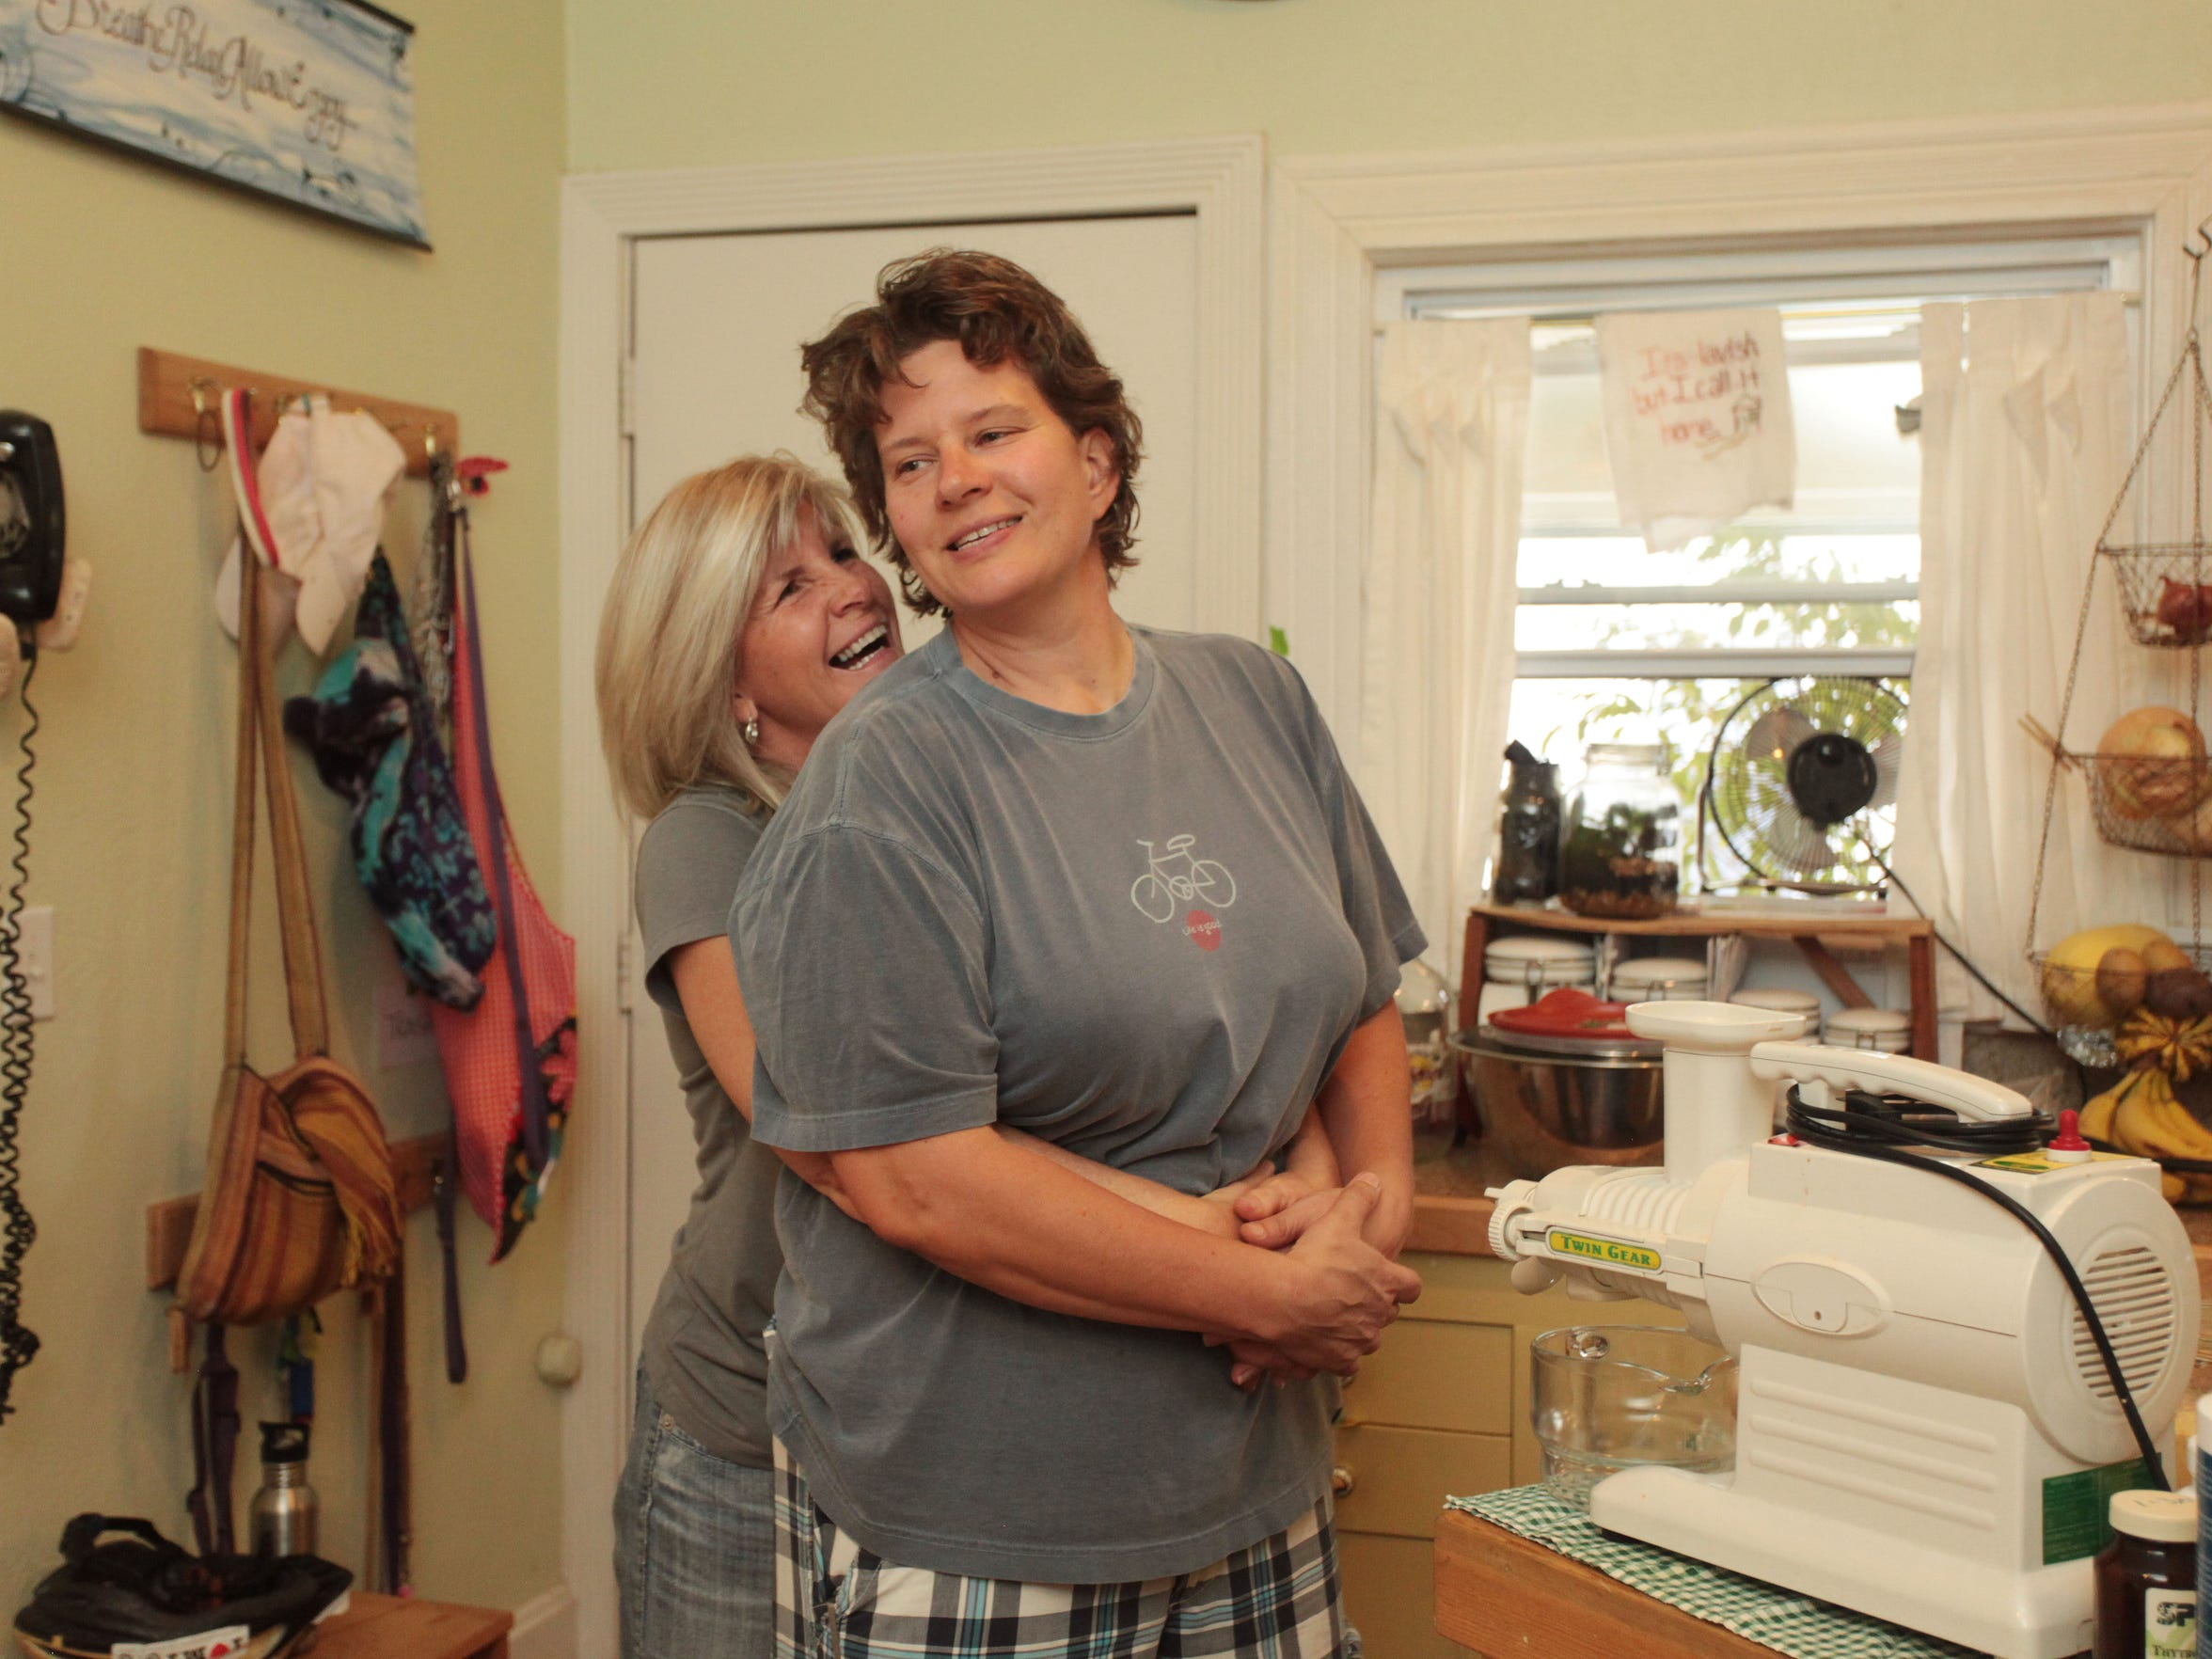 Mary embraces Sue in their kitchen as Sue makes shepherd's